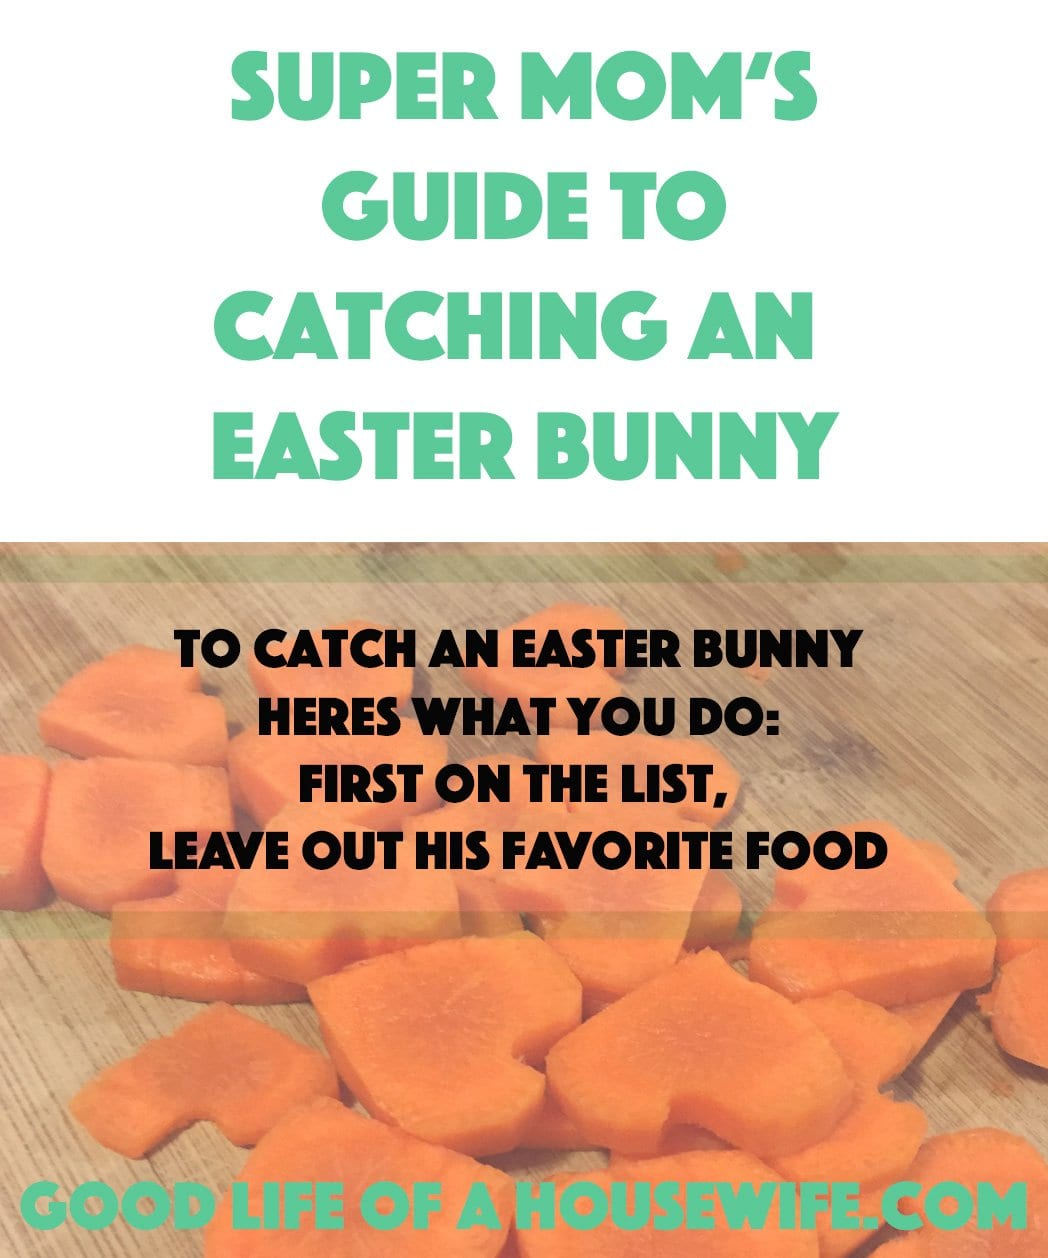 Supermom's Guide to Catching the EasterBunny | Good Life of a Housewife | www.goodlifeofahousewife.com